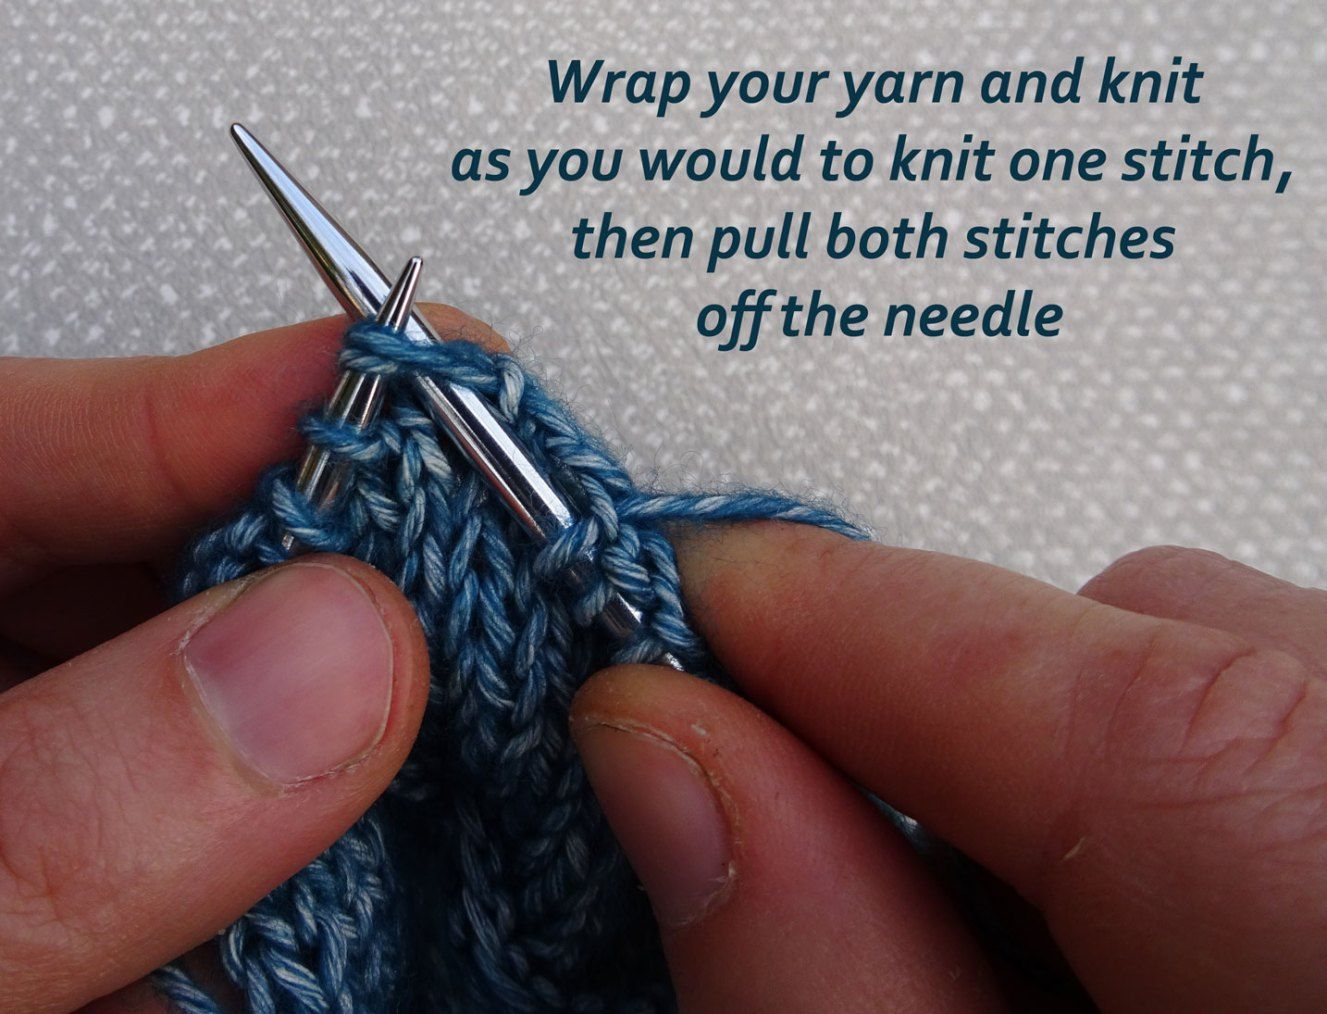 How to Knit Purl 1 Back and Front Increase Tutorial 8